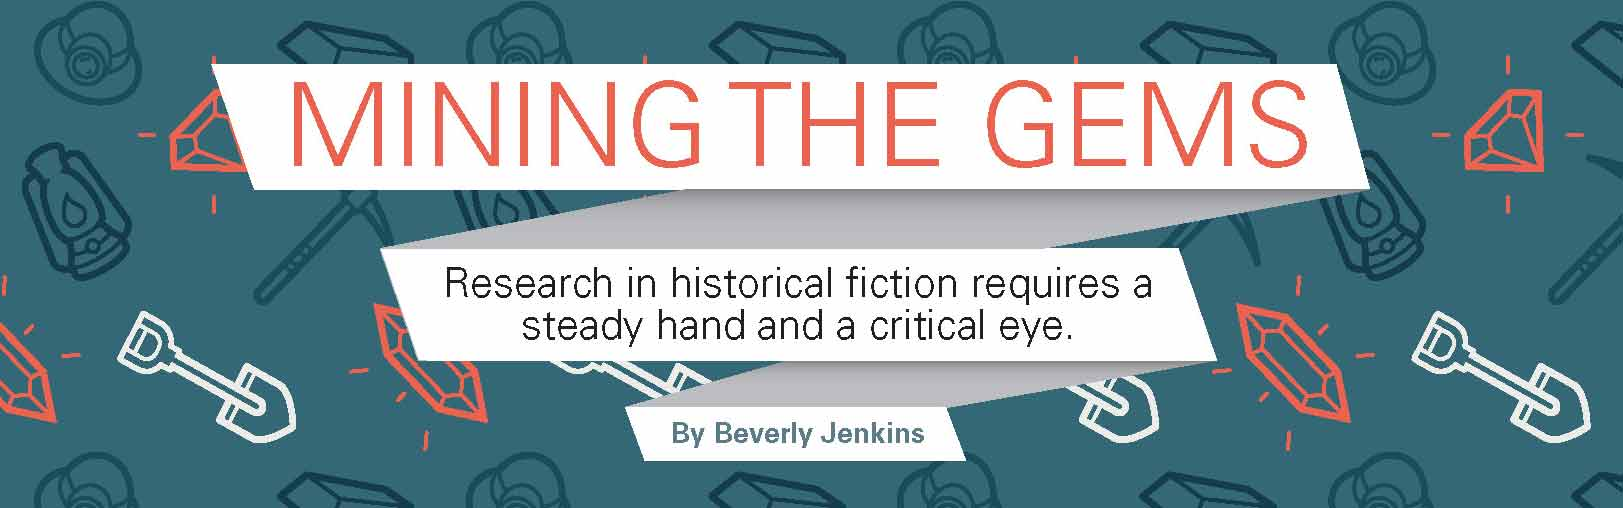 Research in historical fiction